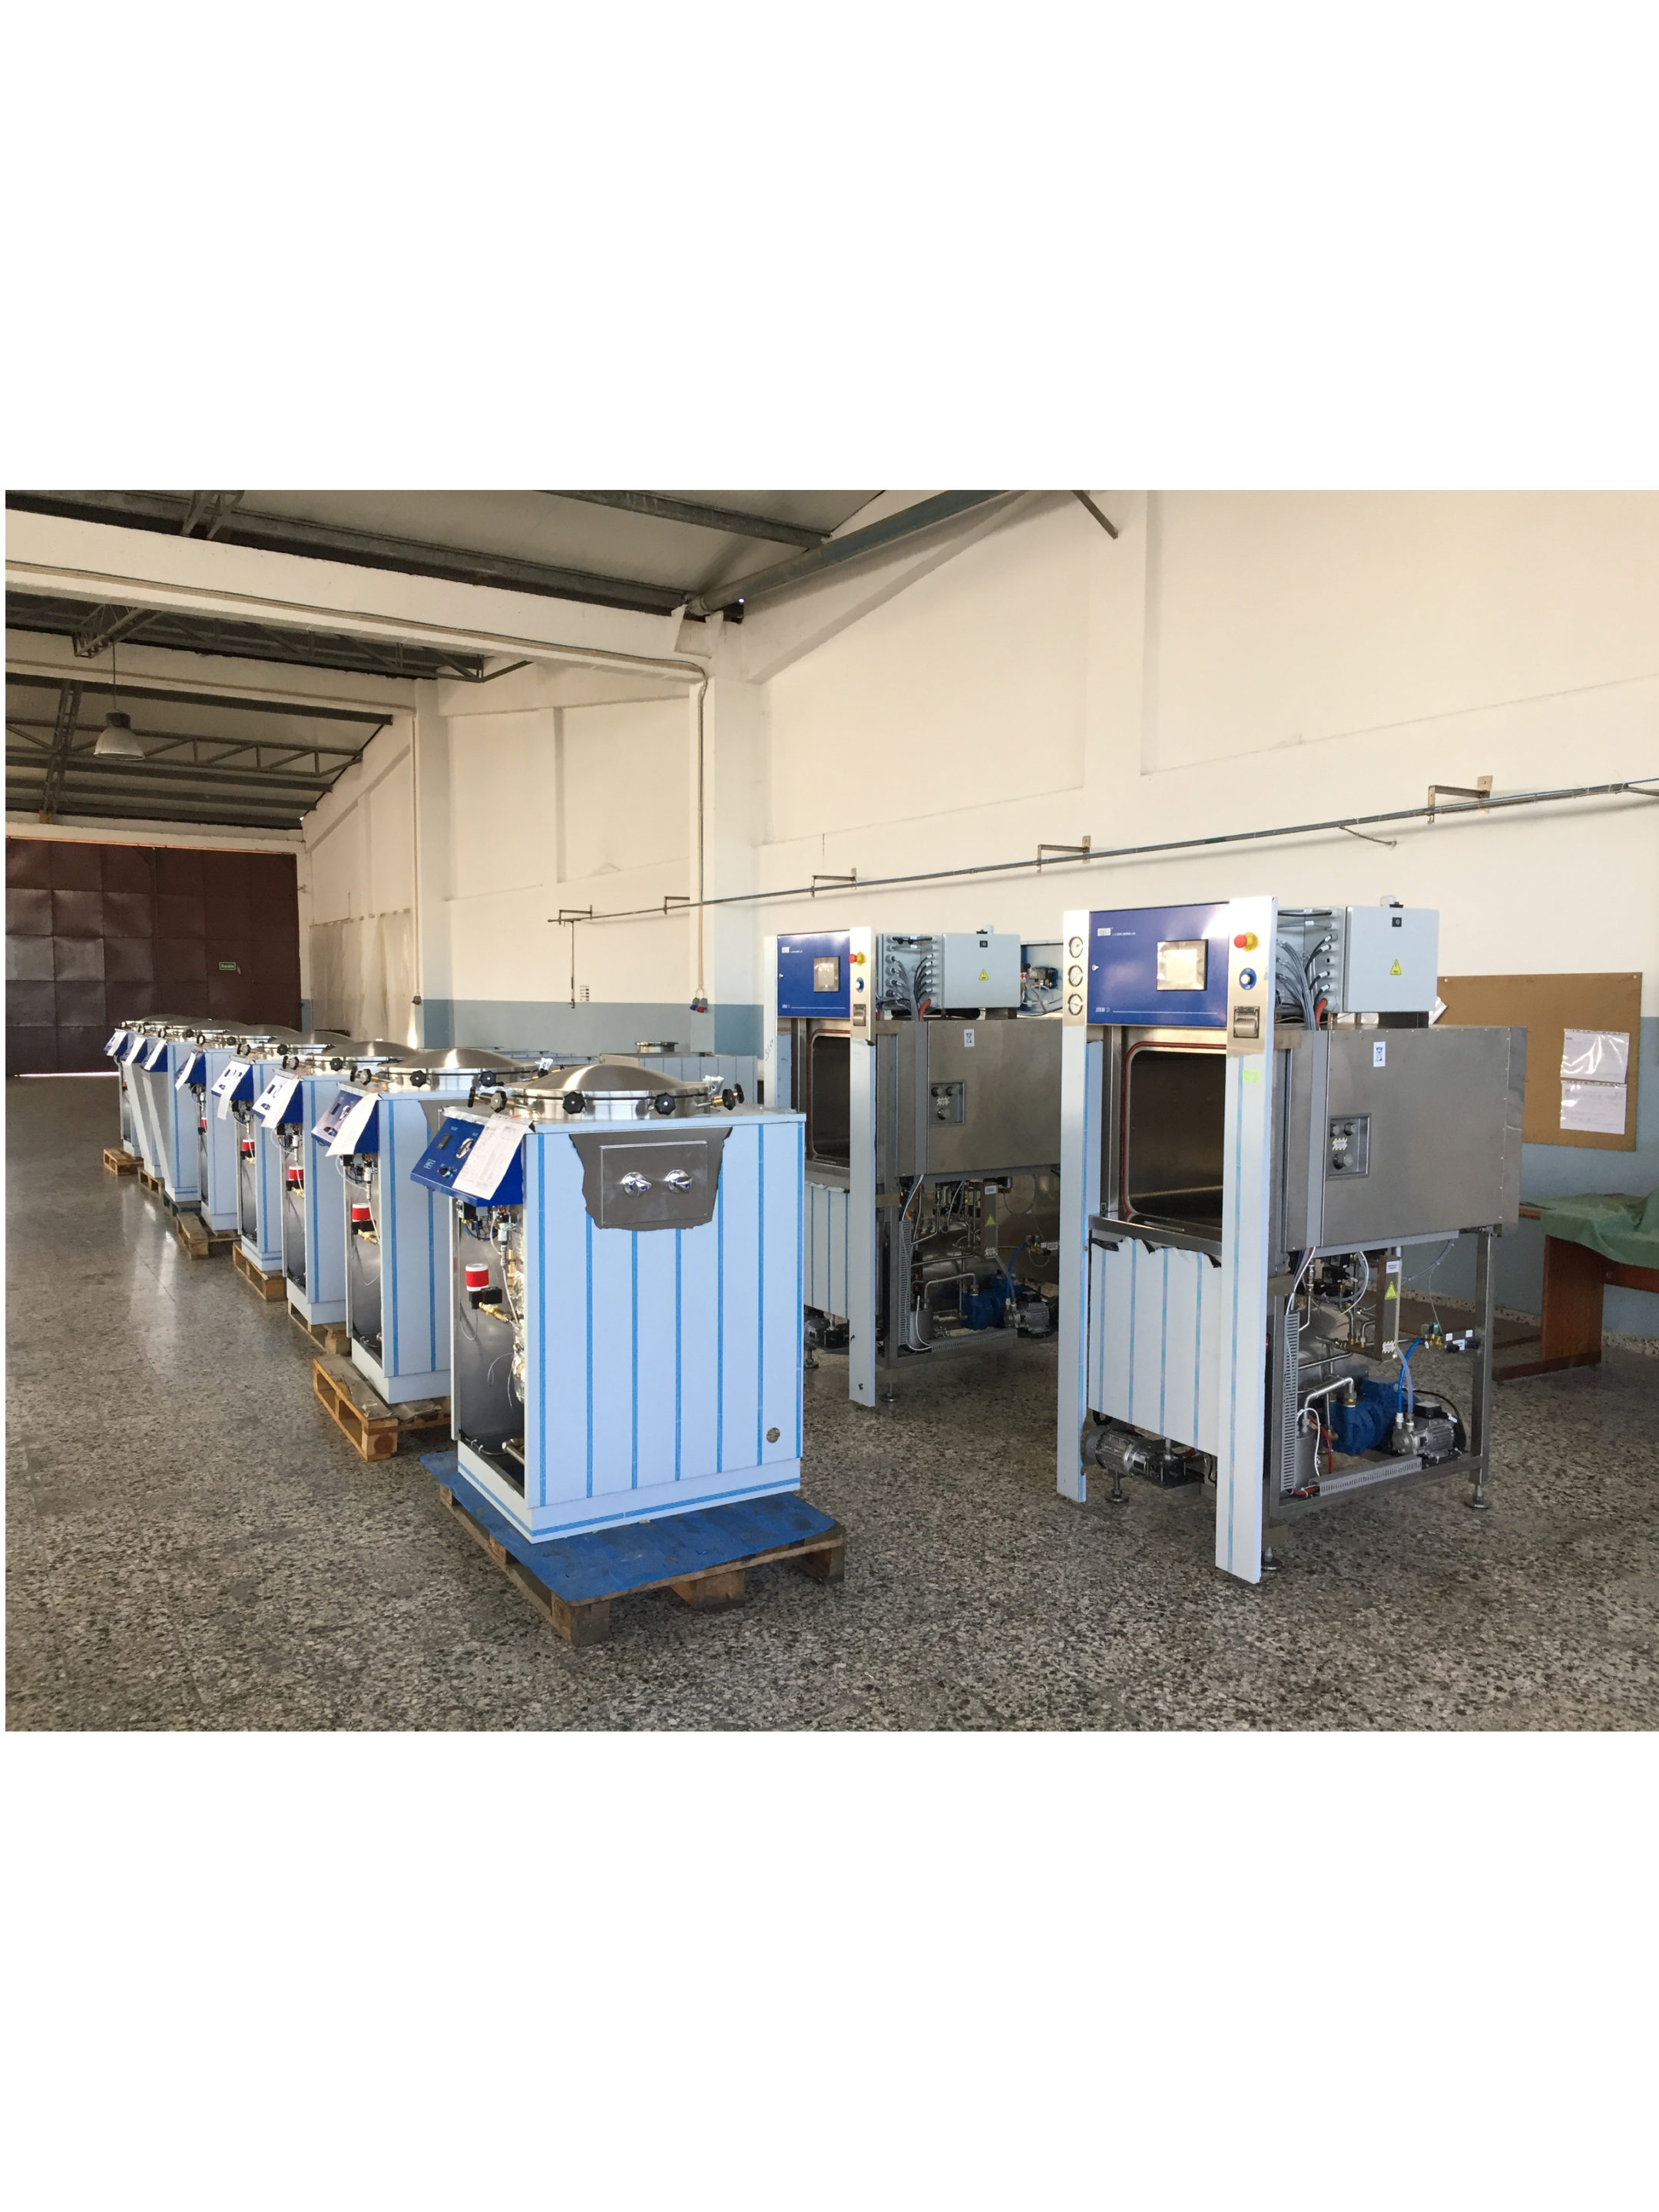 AJC - Steam sterilizers